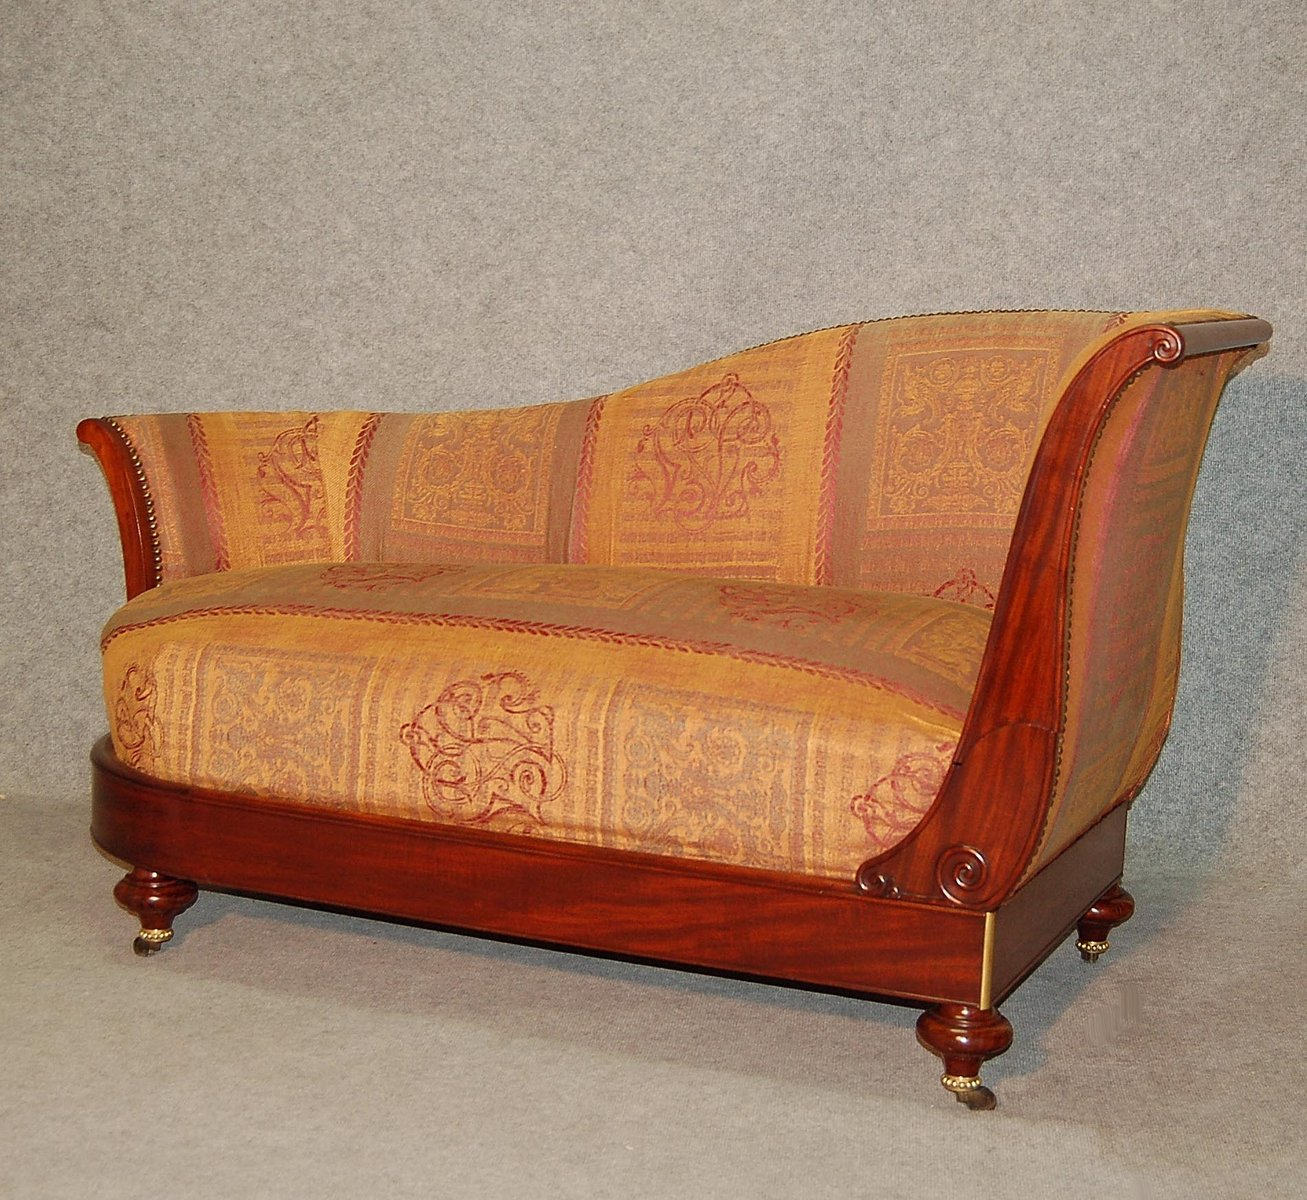 Chaise longue antique en acajou de dubois paris en vente sur pamono - Magasin chaise longue paris ...